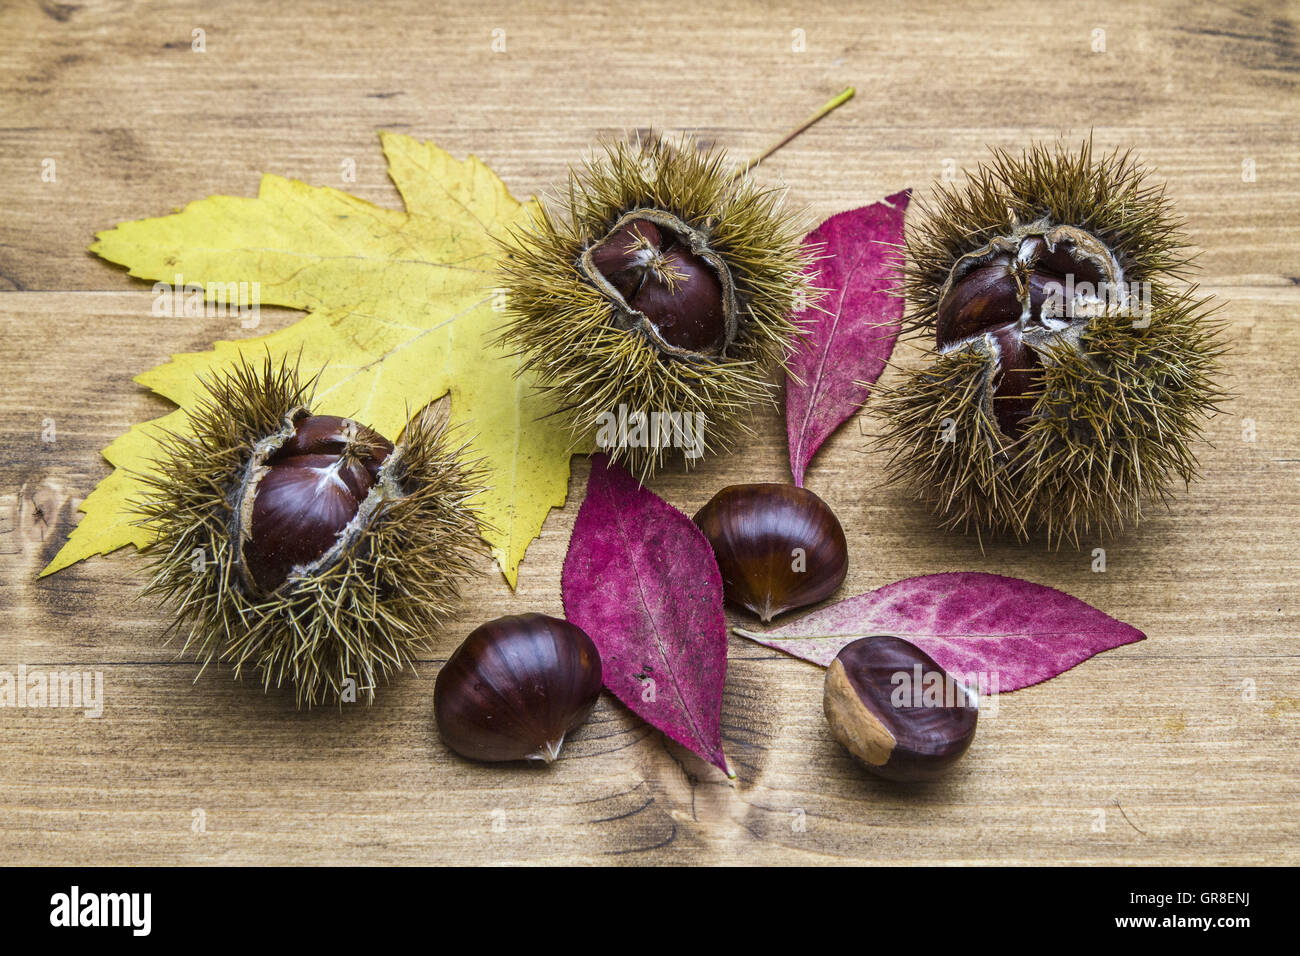 The Chestnut Is A Tasty And Popular Fruit Tree - Stock Image